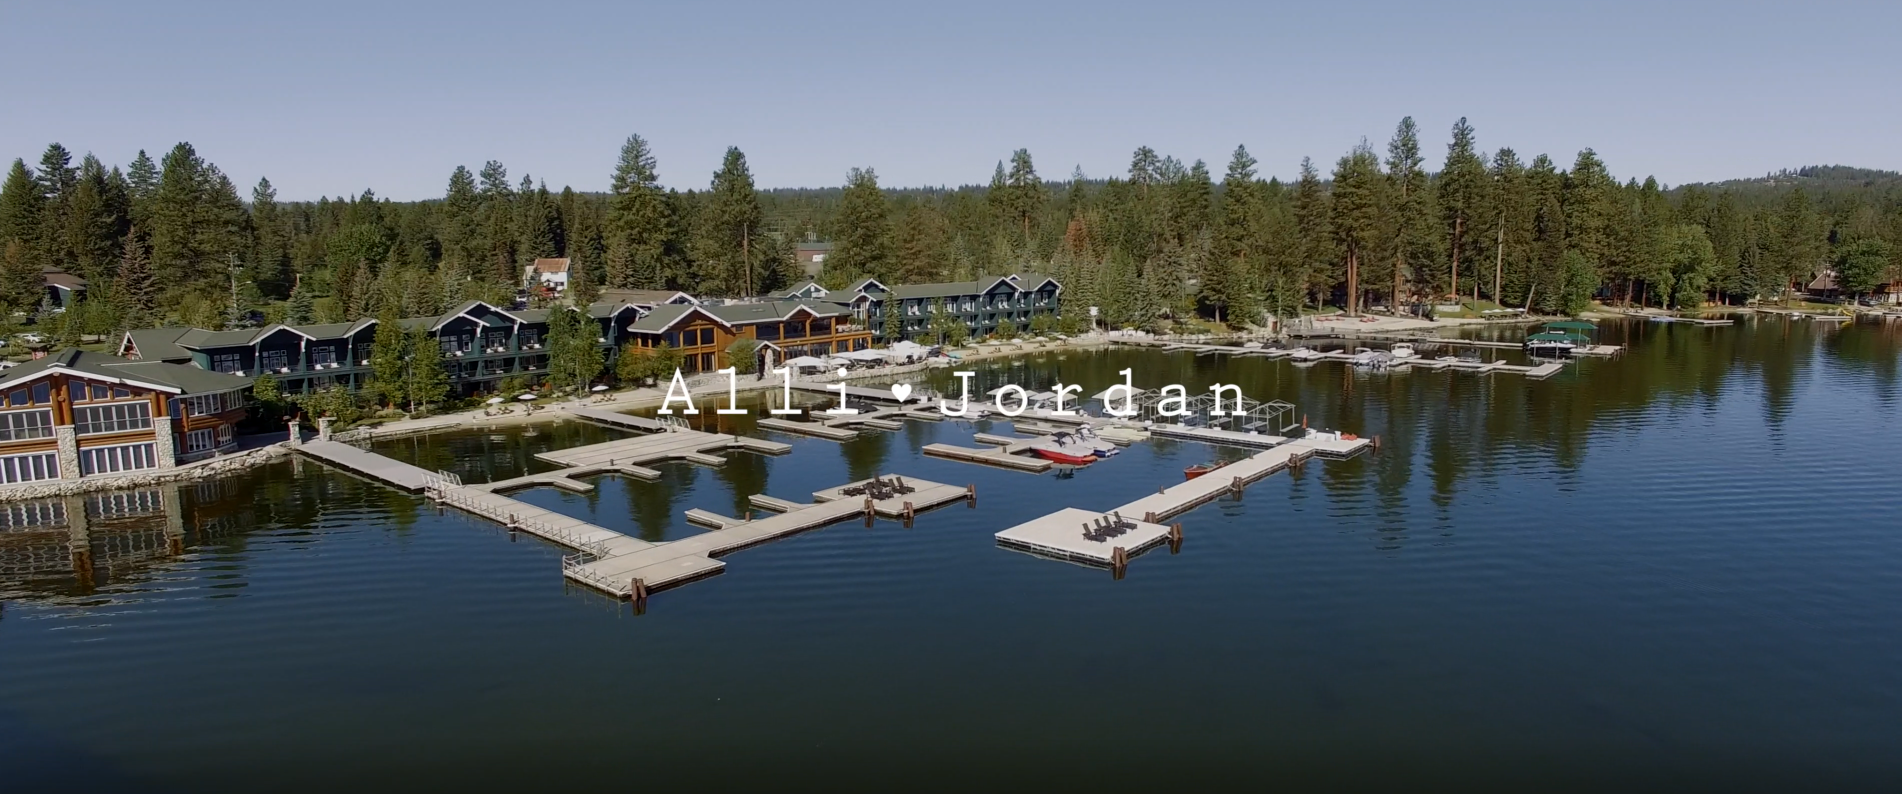 The beautiful clear skies, crisp mountain air and gorgeous lake views were some of the amazing highlights of shooting at Shoreline Lodge. For us wedding videographer's having a venue like this made it easy to create nothing short of a breathtaking film.